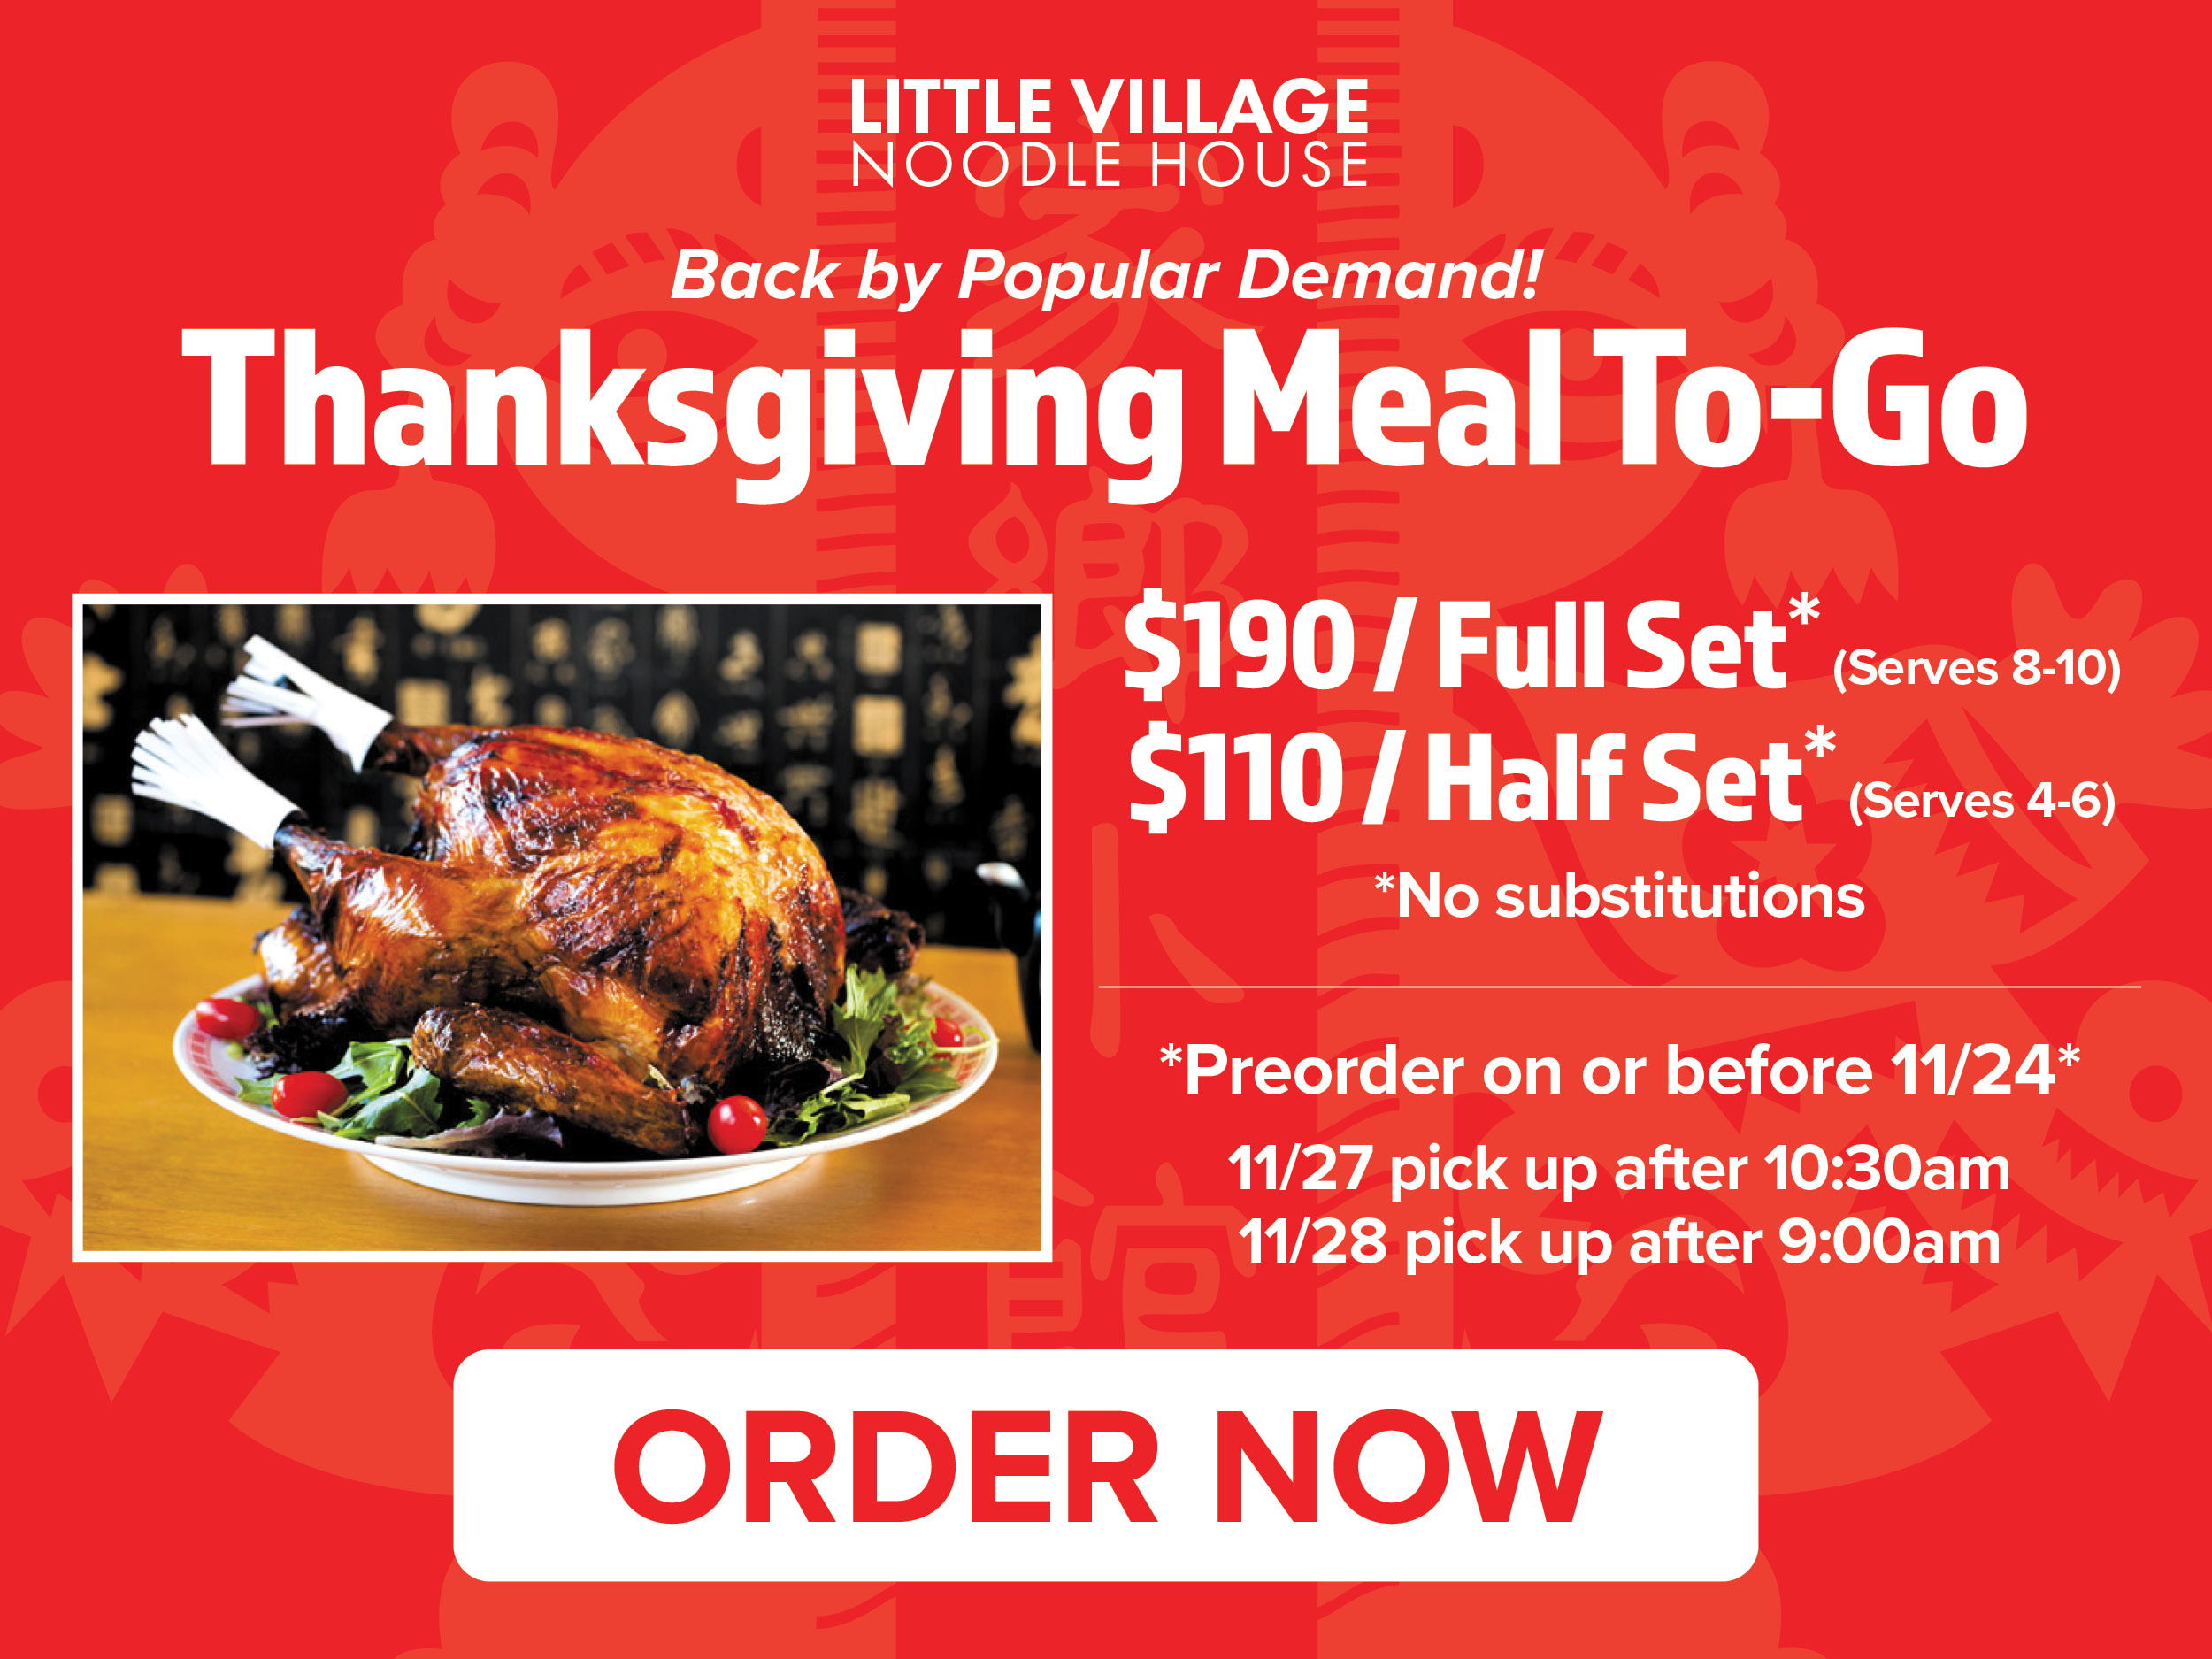 Little Village Thanksgiving Meal To-Go 2019